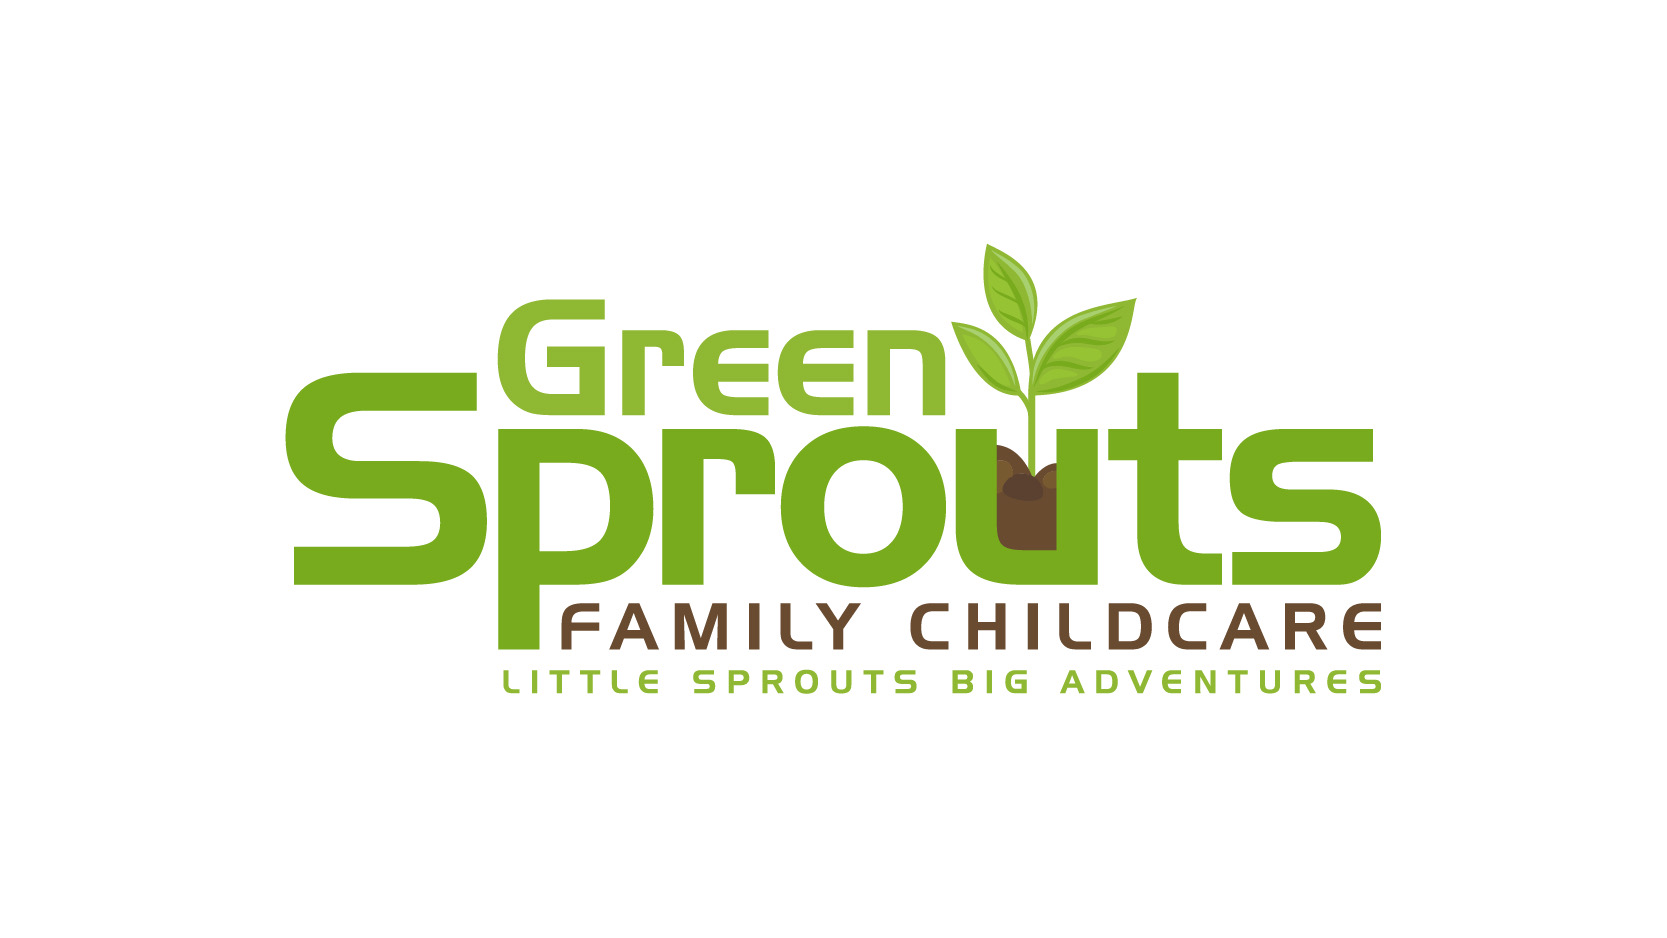 Green Sprouts Family Childcare